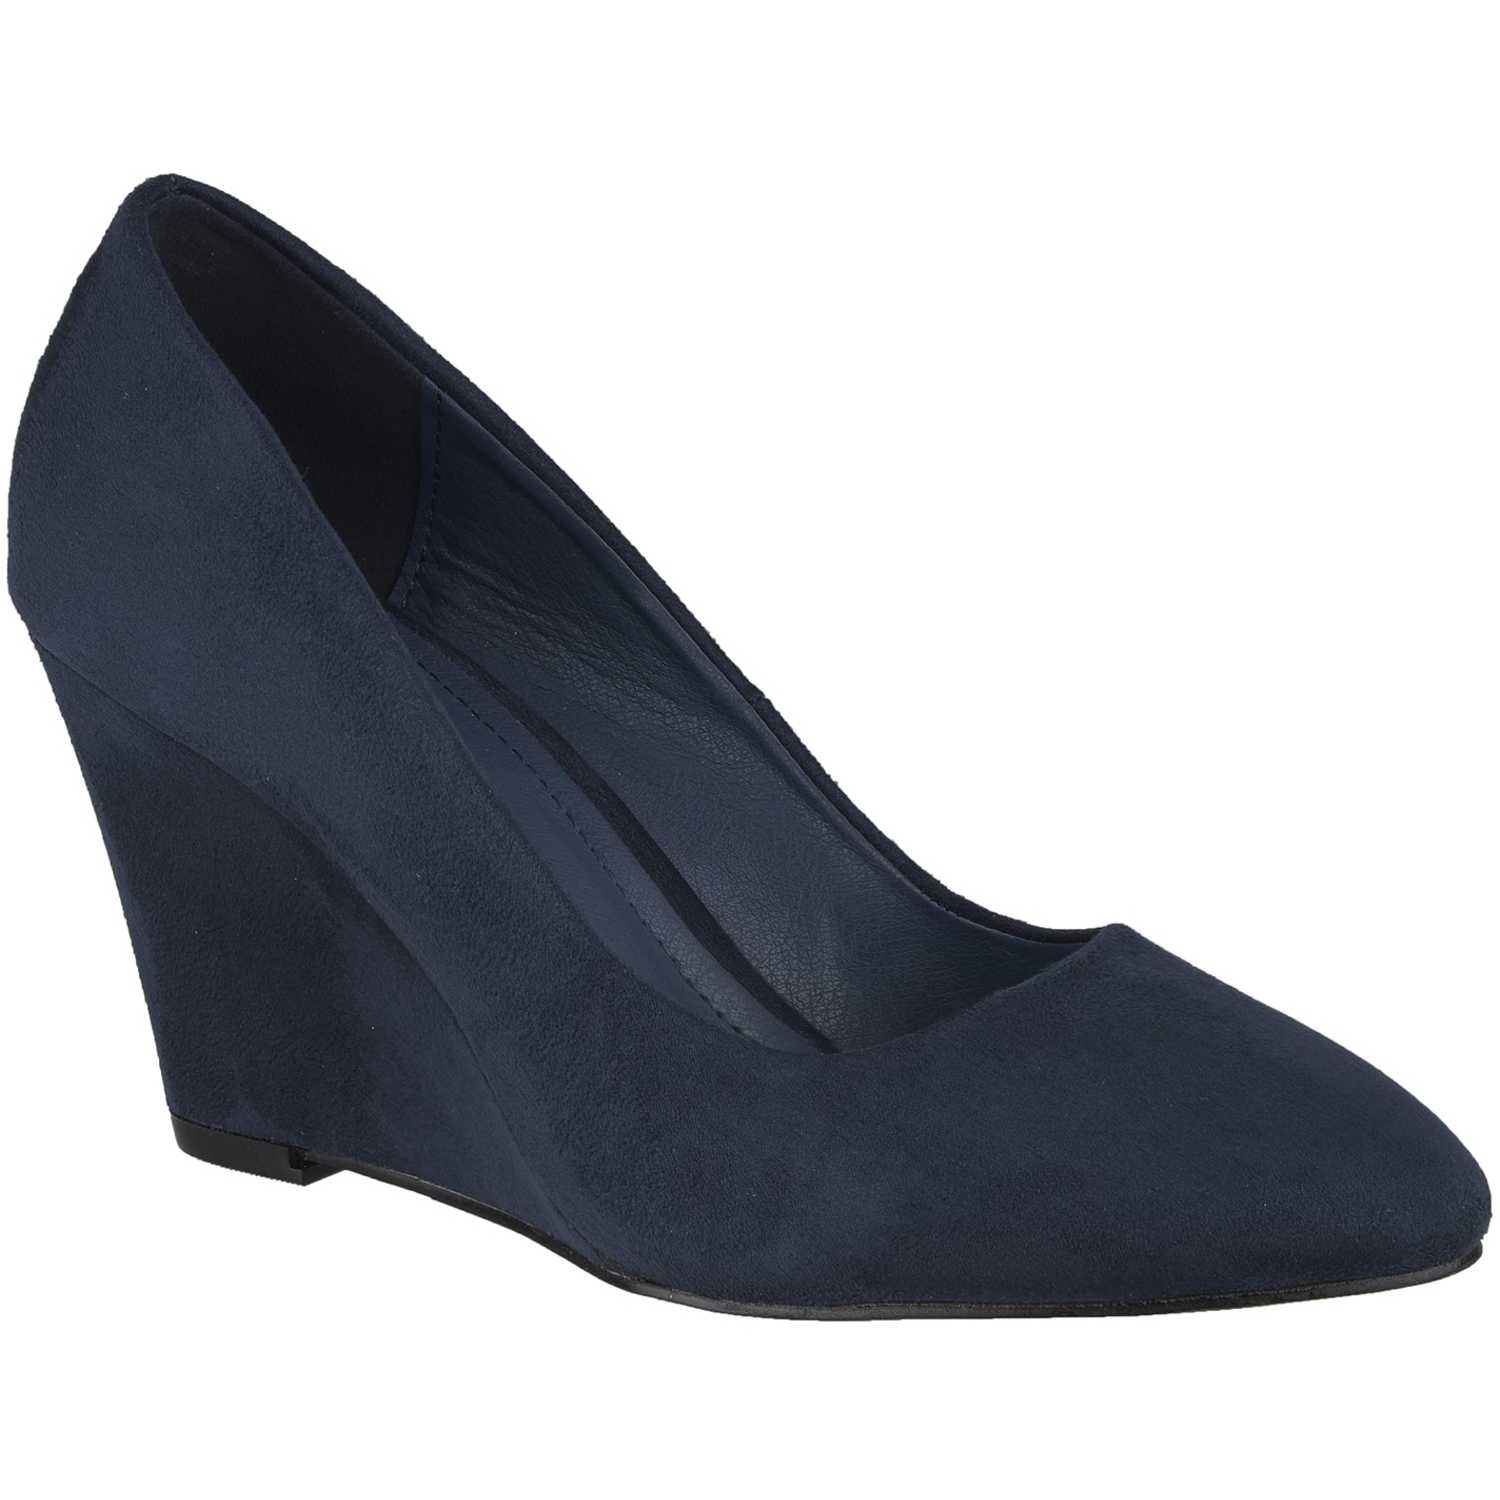 Platanitos cw 3668 Azul Estiletos y Pumps